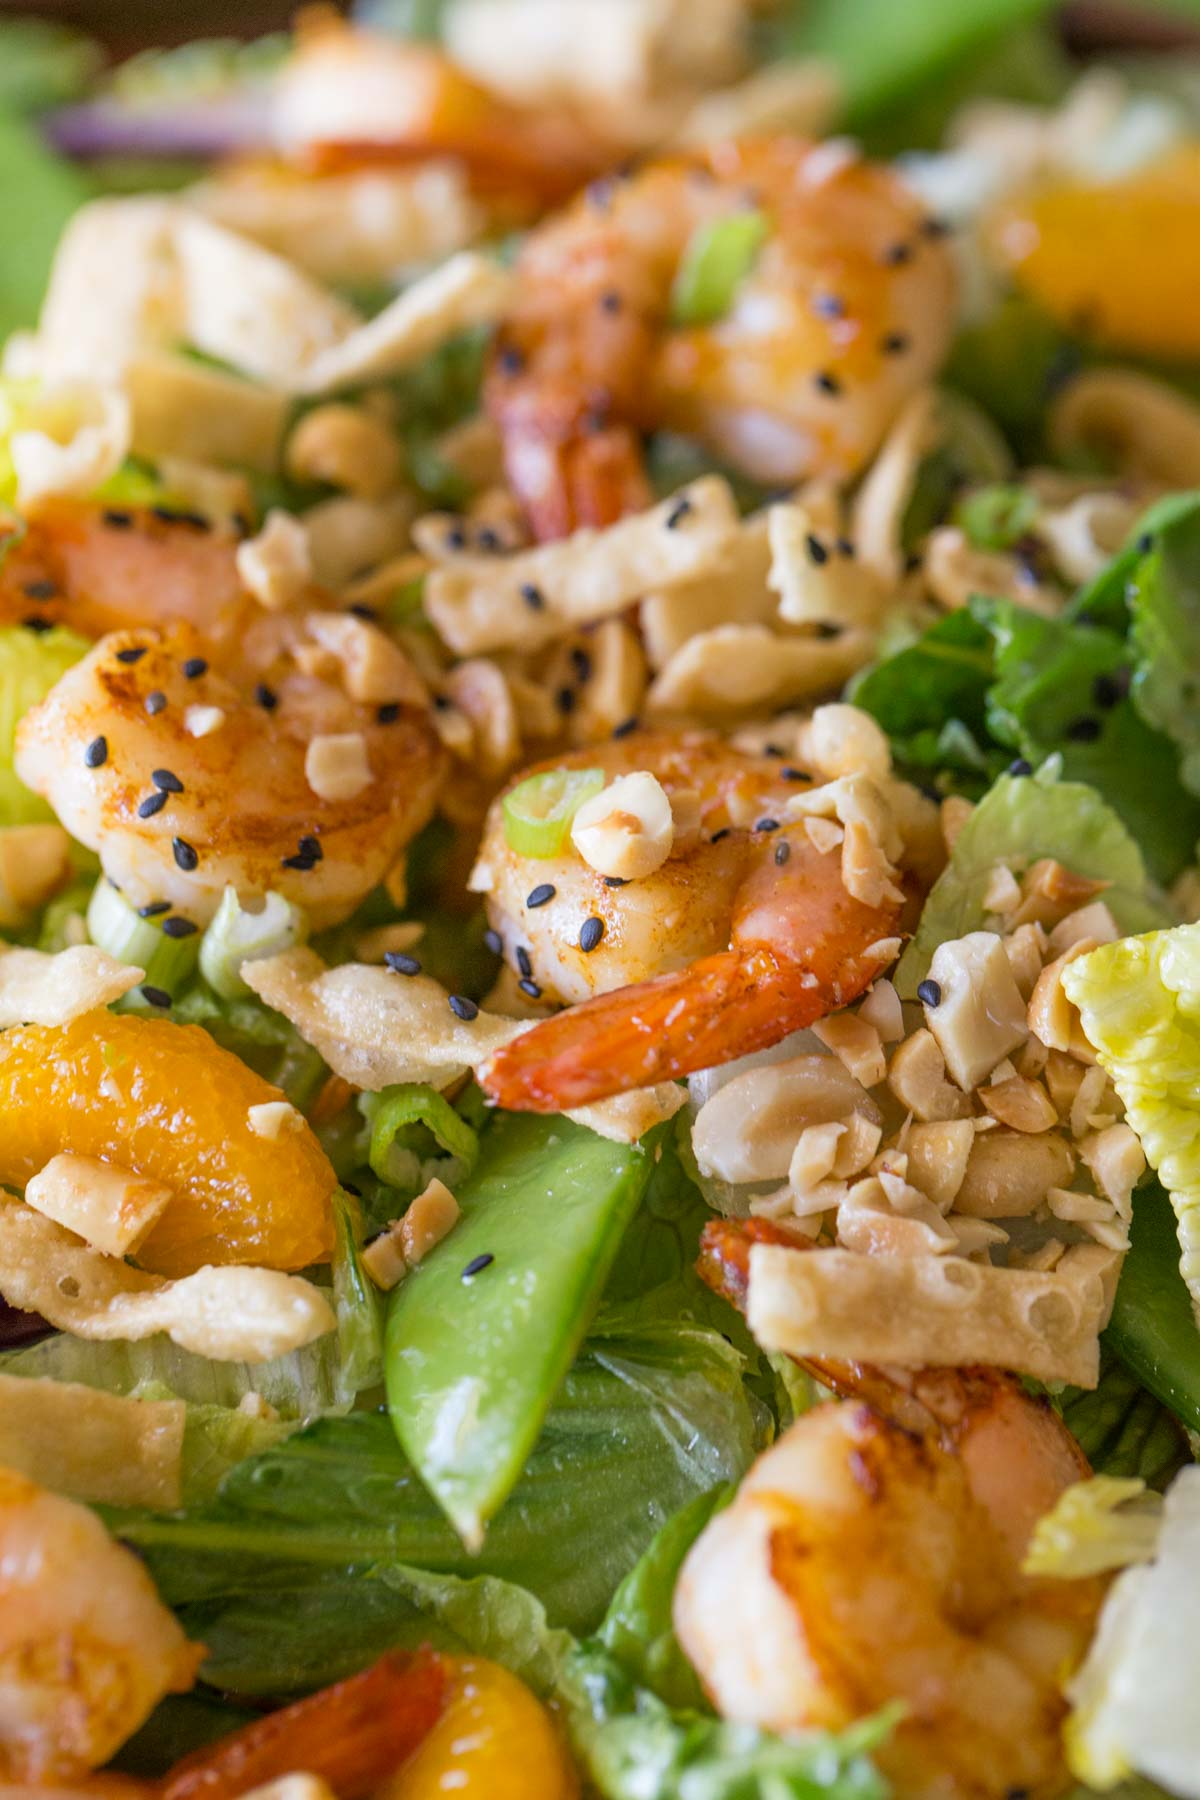 Close up of the Shrimp Salad.